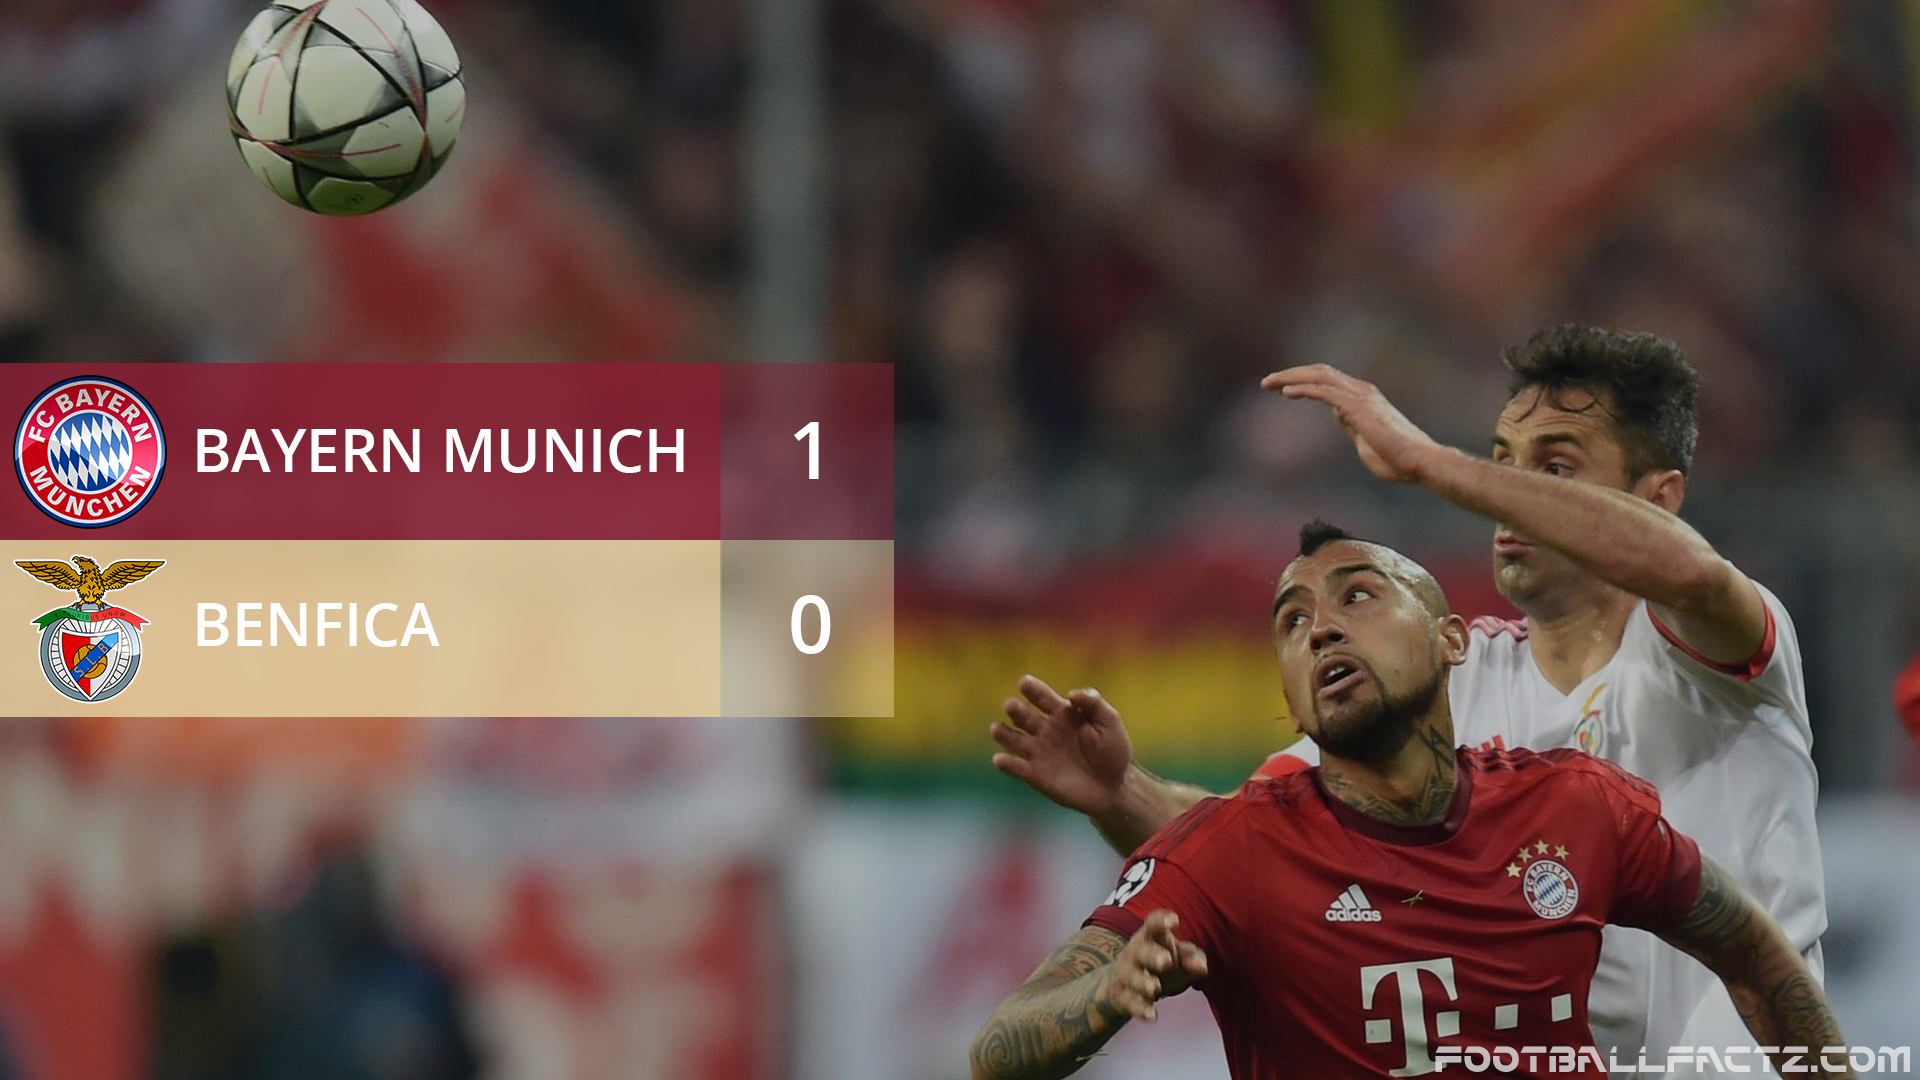 Bayern Munich 1 - 0 Benfica, Champions League